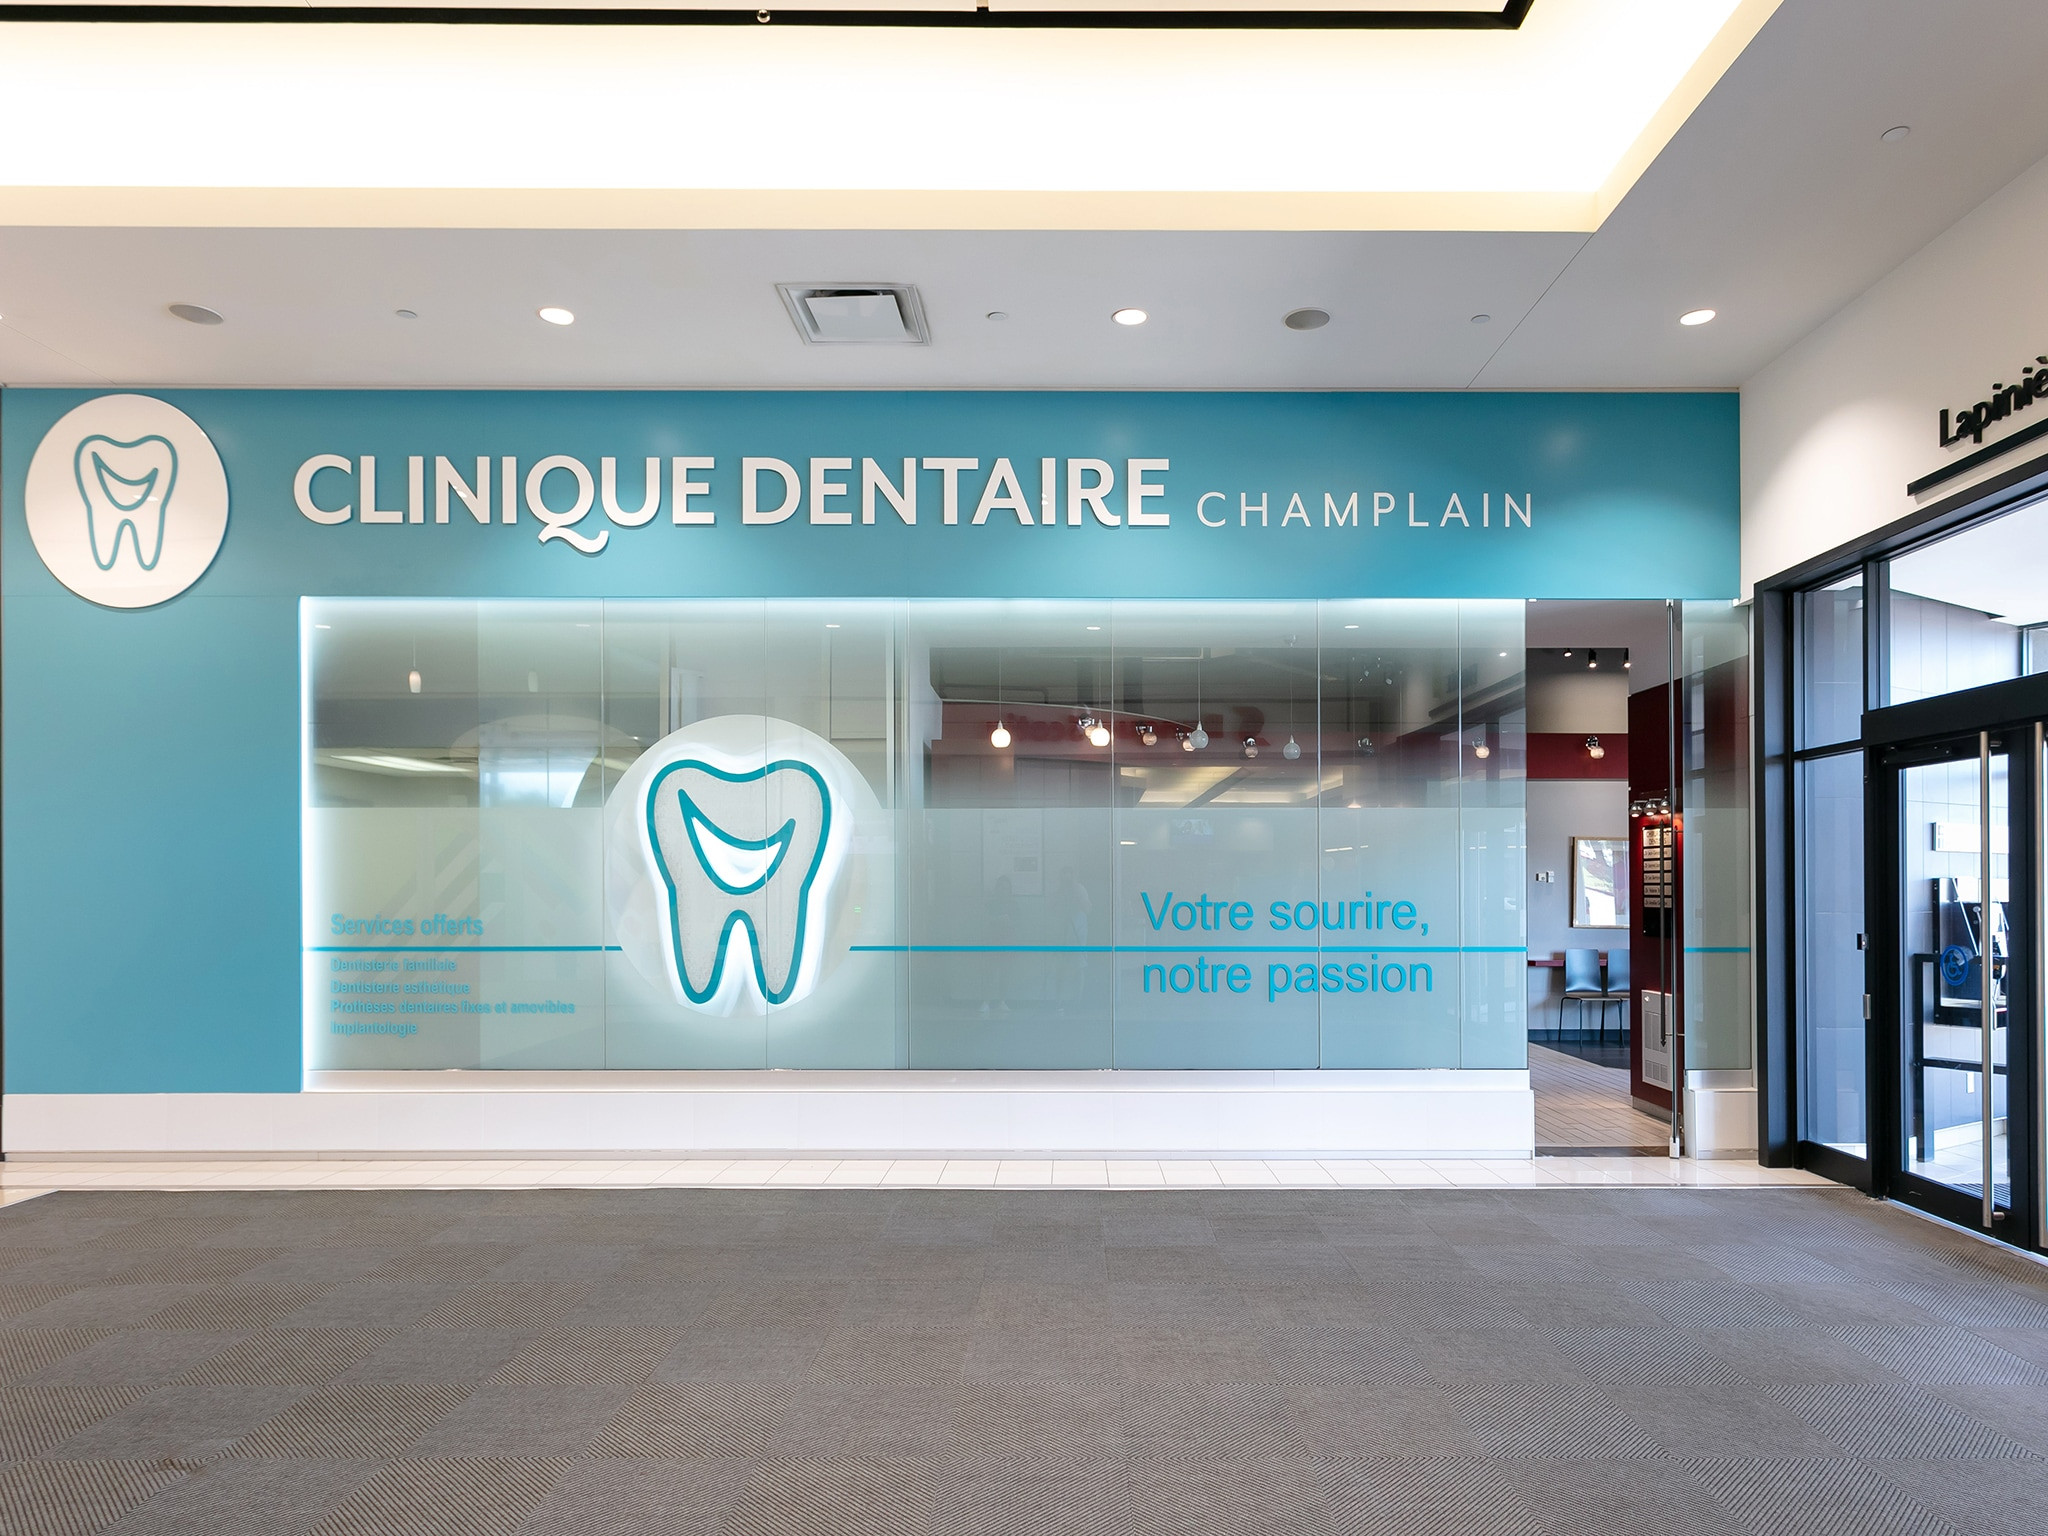 Clinique dentaire Champlain - Mail Champlain